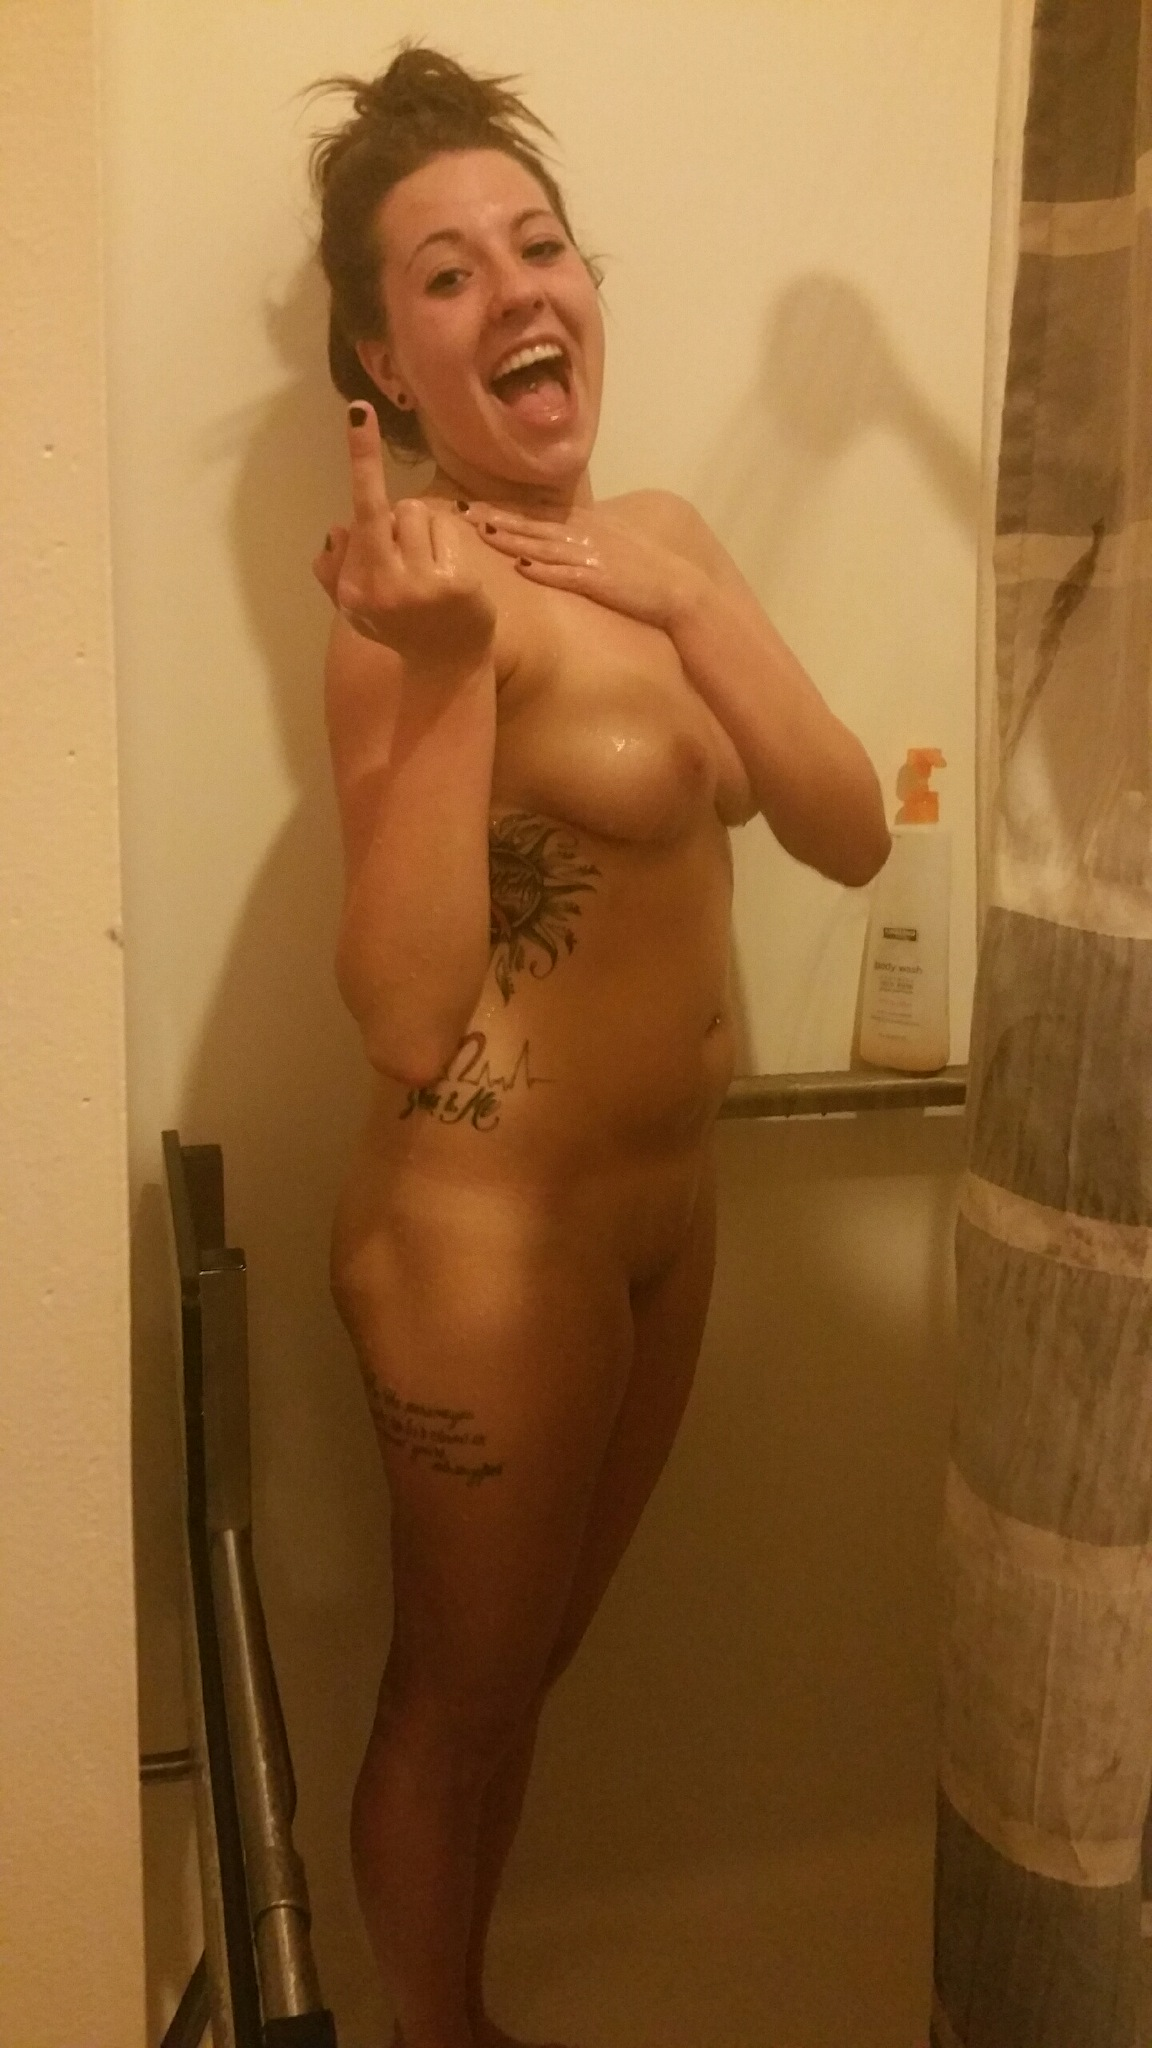 Nude caught in shower video hot naked pics